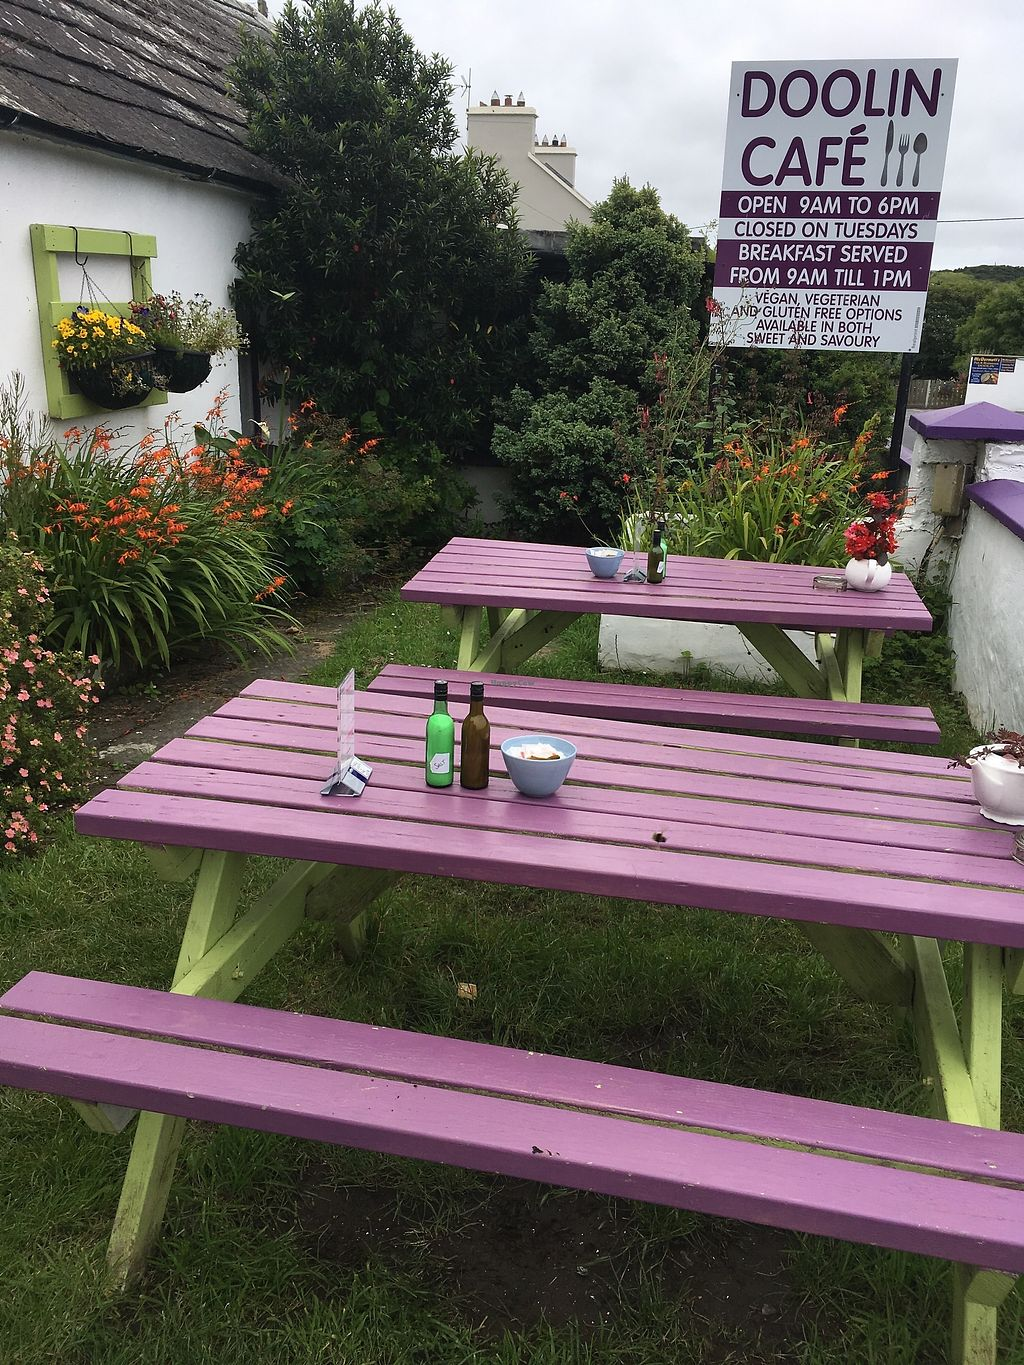 """Photo of Doolin Cafe  by <a href=""""/members/profile/phashonkat"""">phashonkat</a> <br/>Outdoor seating <br/> July 24, 2017  - <a href='/contact/abuse/image/71584/284086'>Report</a>"""